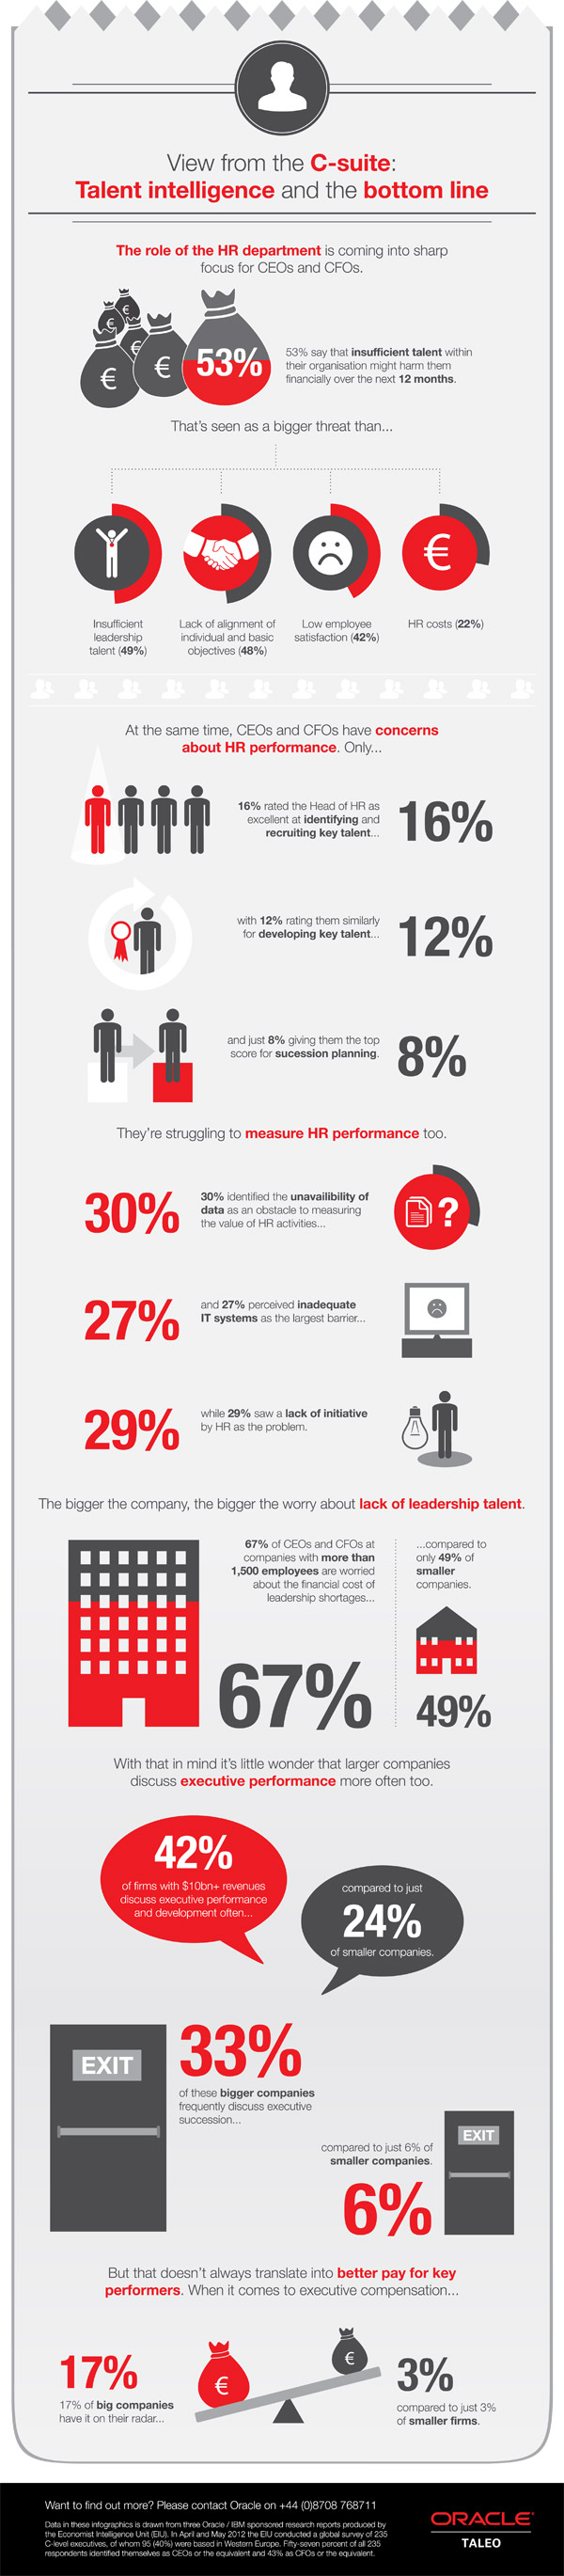 Infographic: Talent Intelligence and the Bottom line